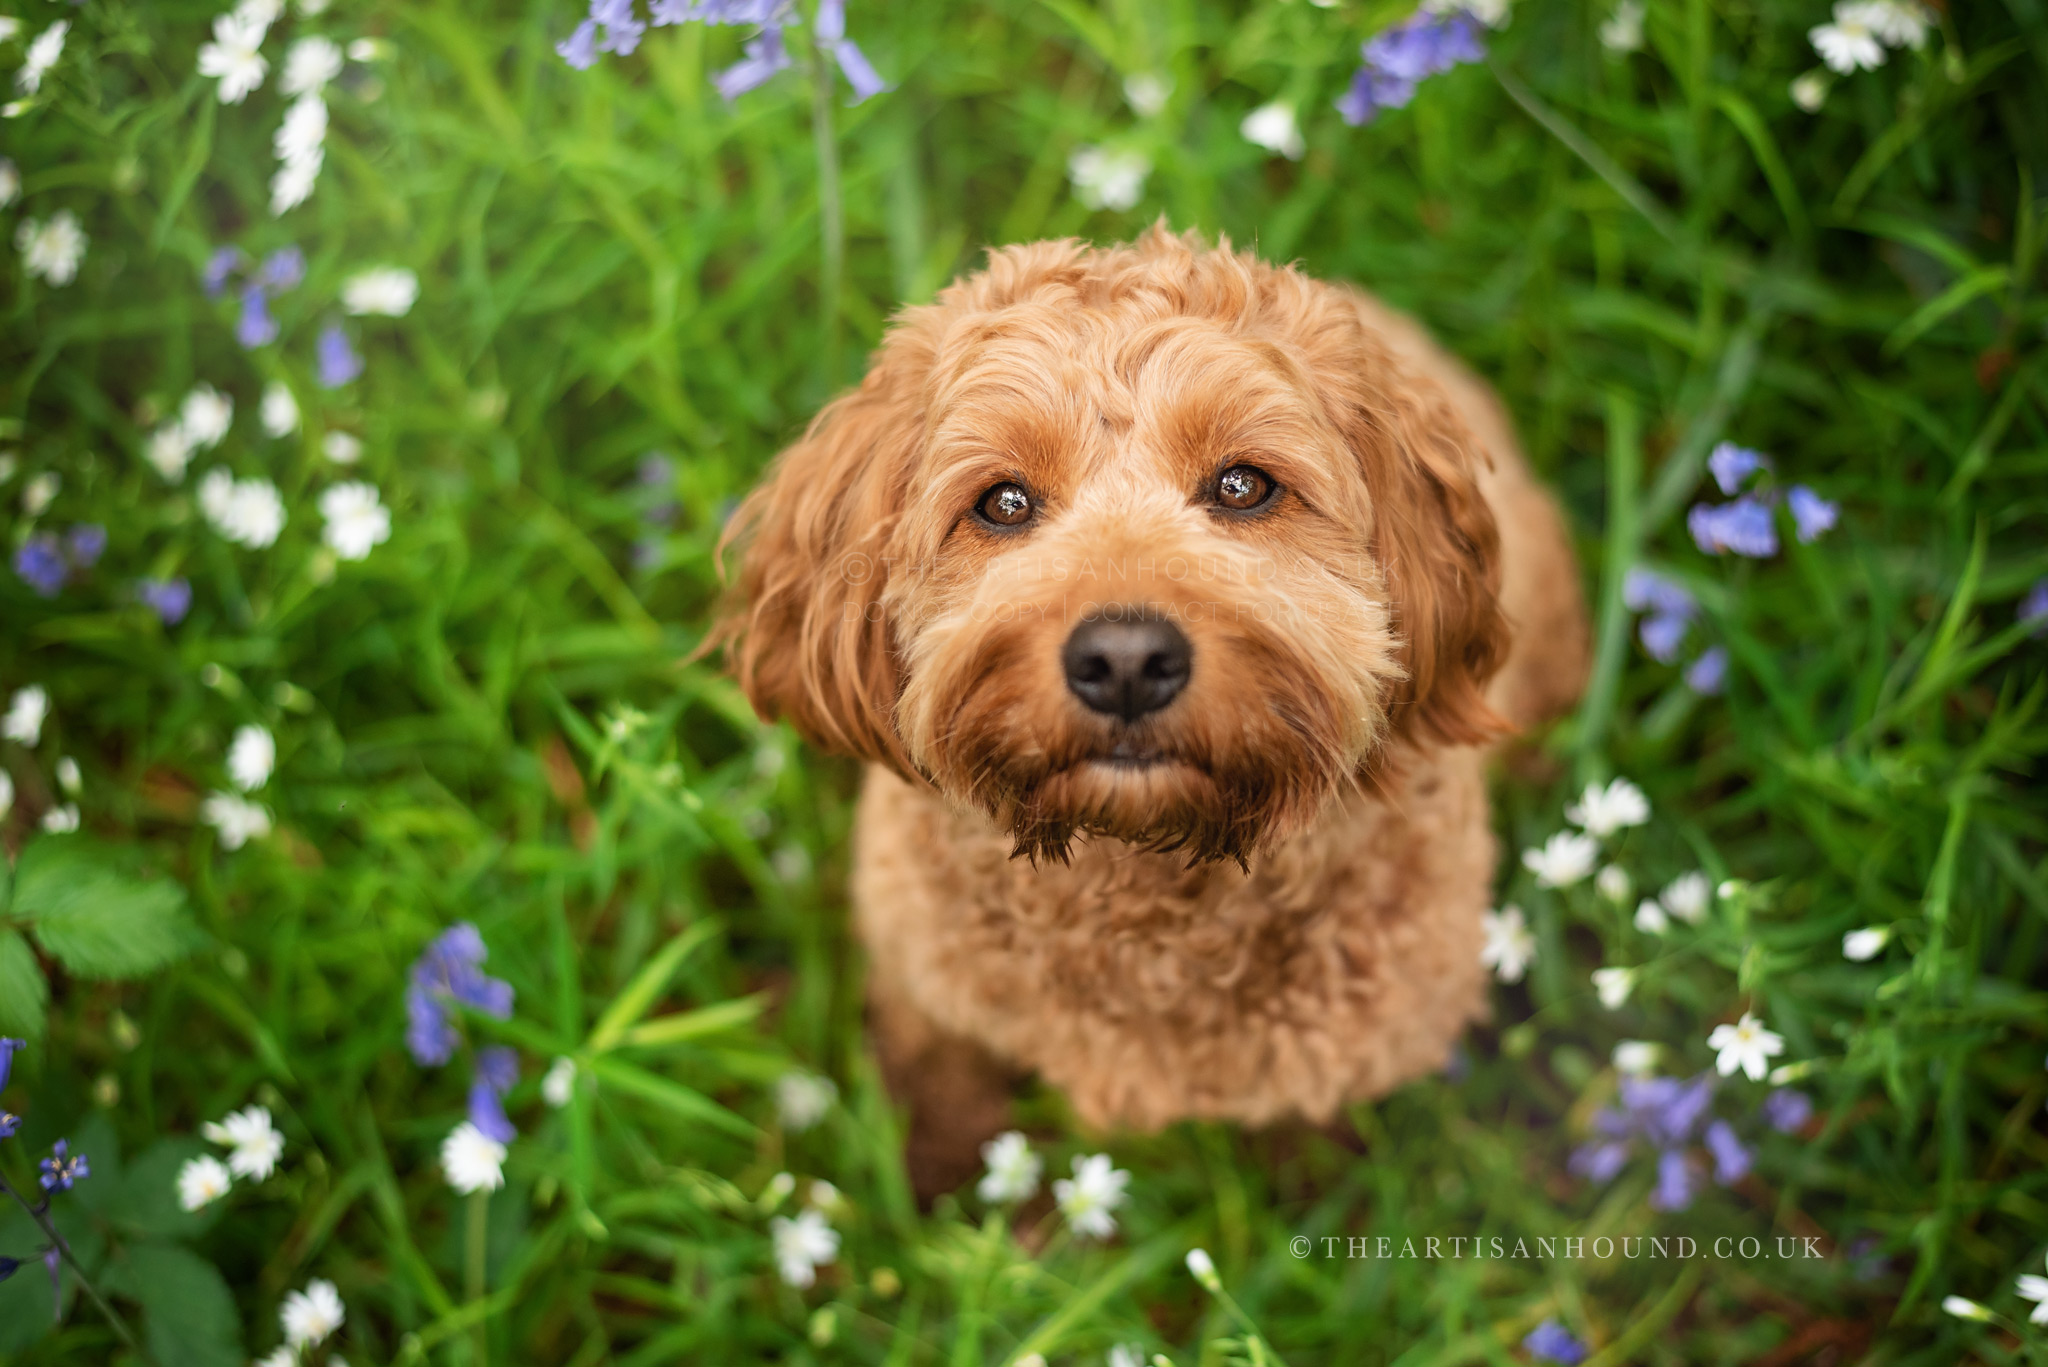 cockapoo-looking-up-at-camera-in-grass